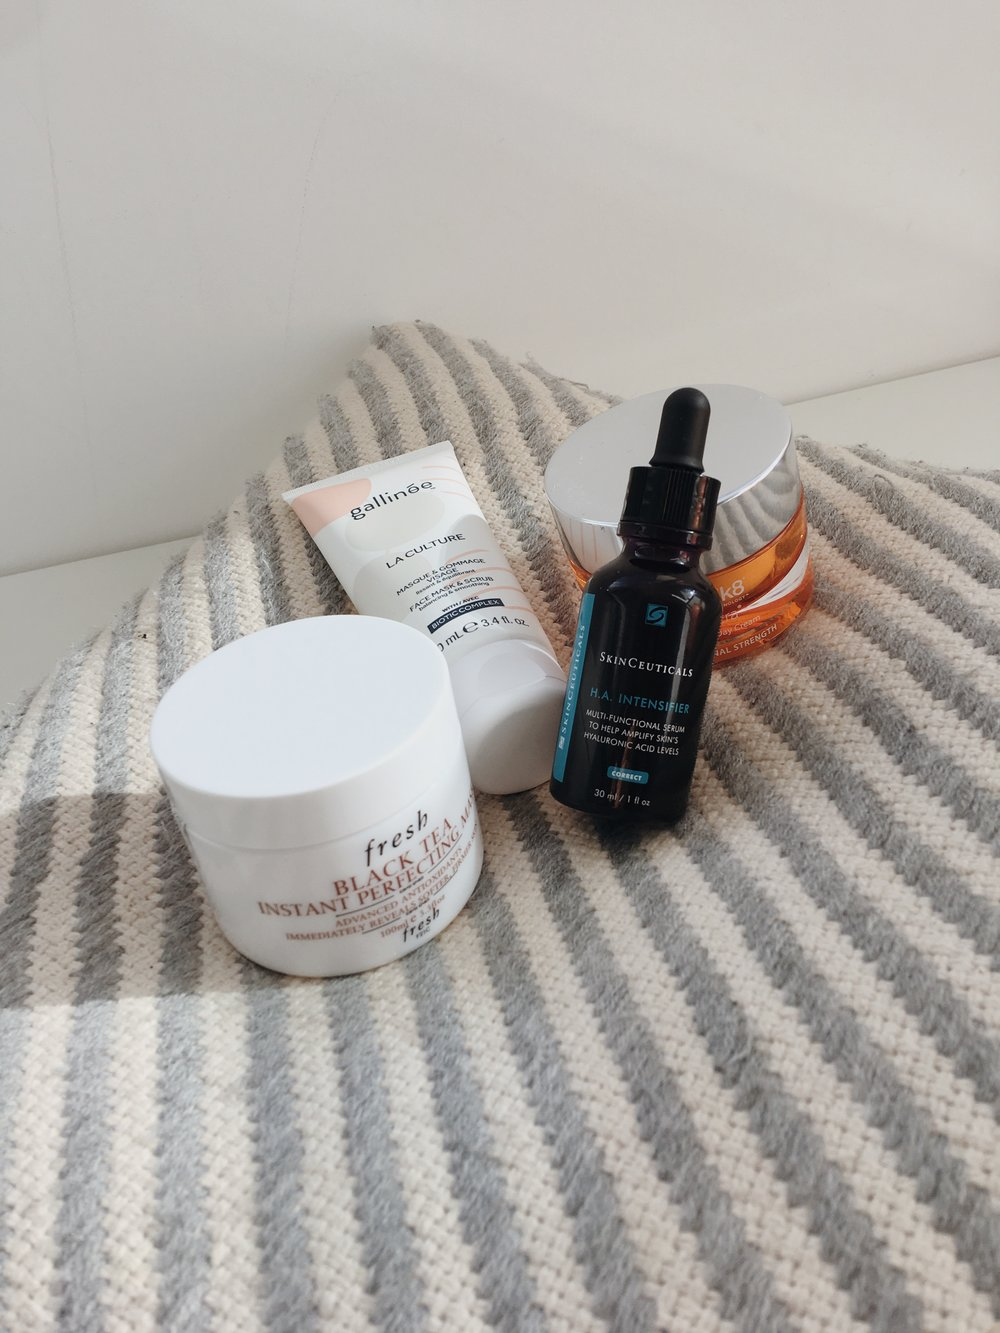 JHM - skincare on trial